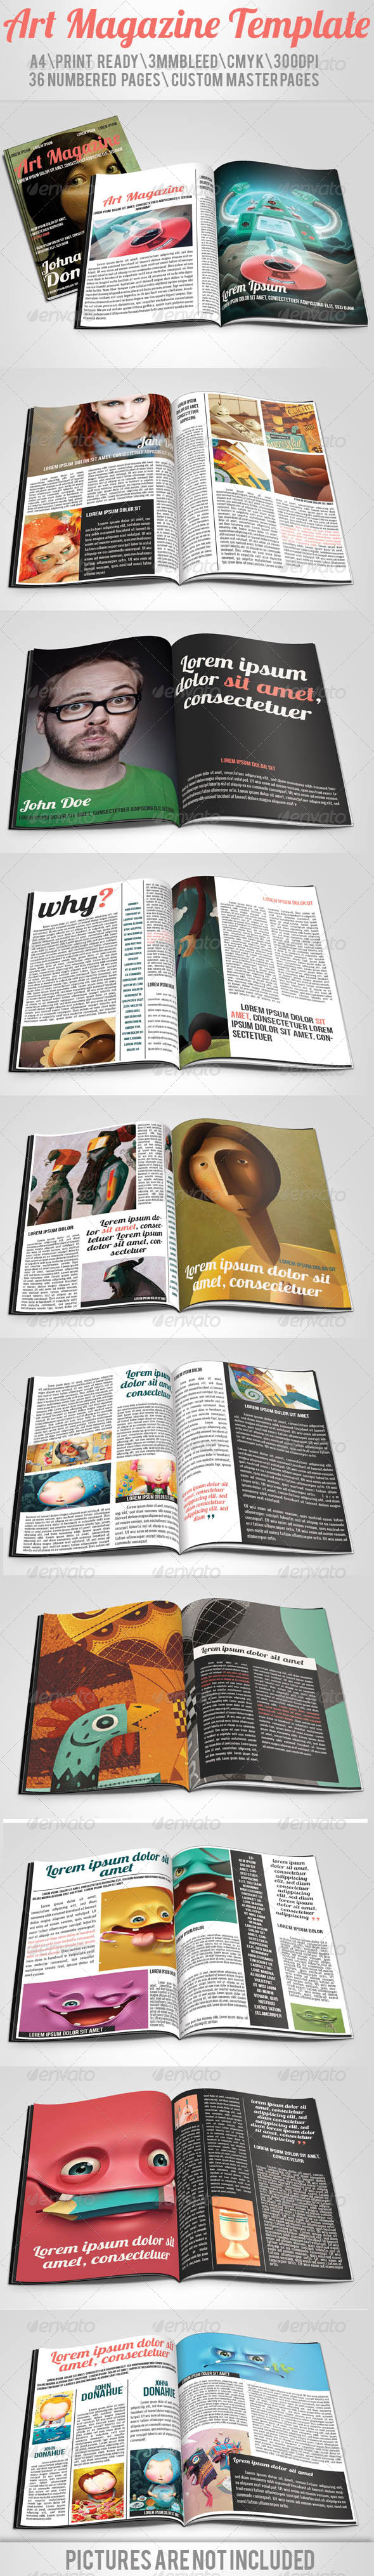 GraphicRiver Art Magazine Template 4958918